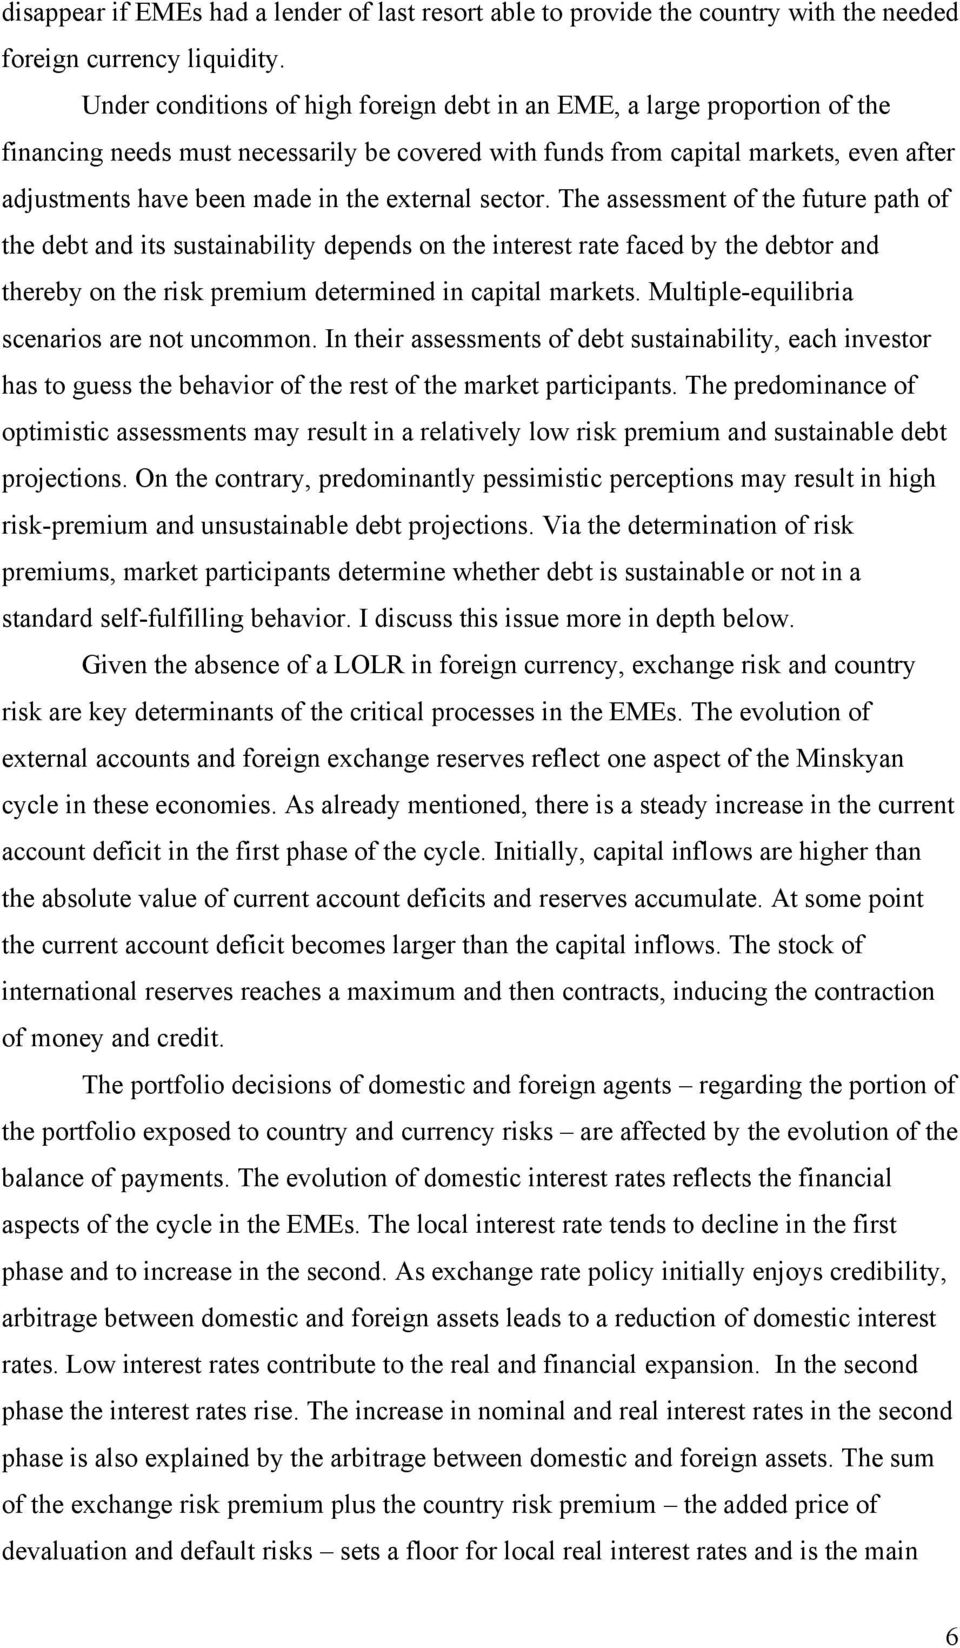 external sector. The assessment of the future path of the debt and its sustainability depends on the interest rate faced by the debtor and thereby on the risk premium determined in capital markets.